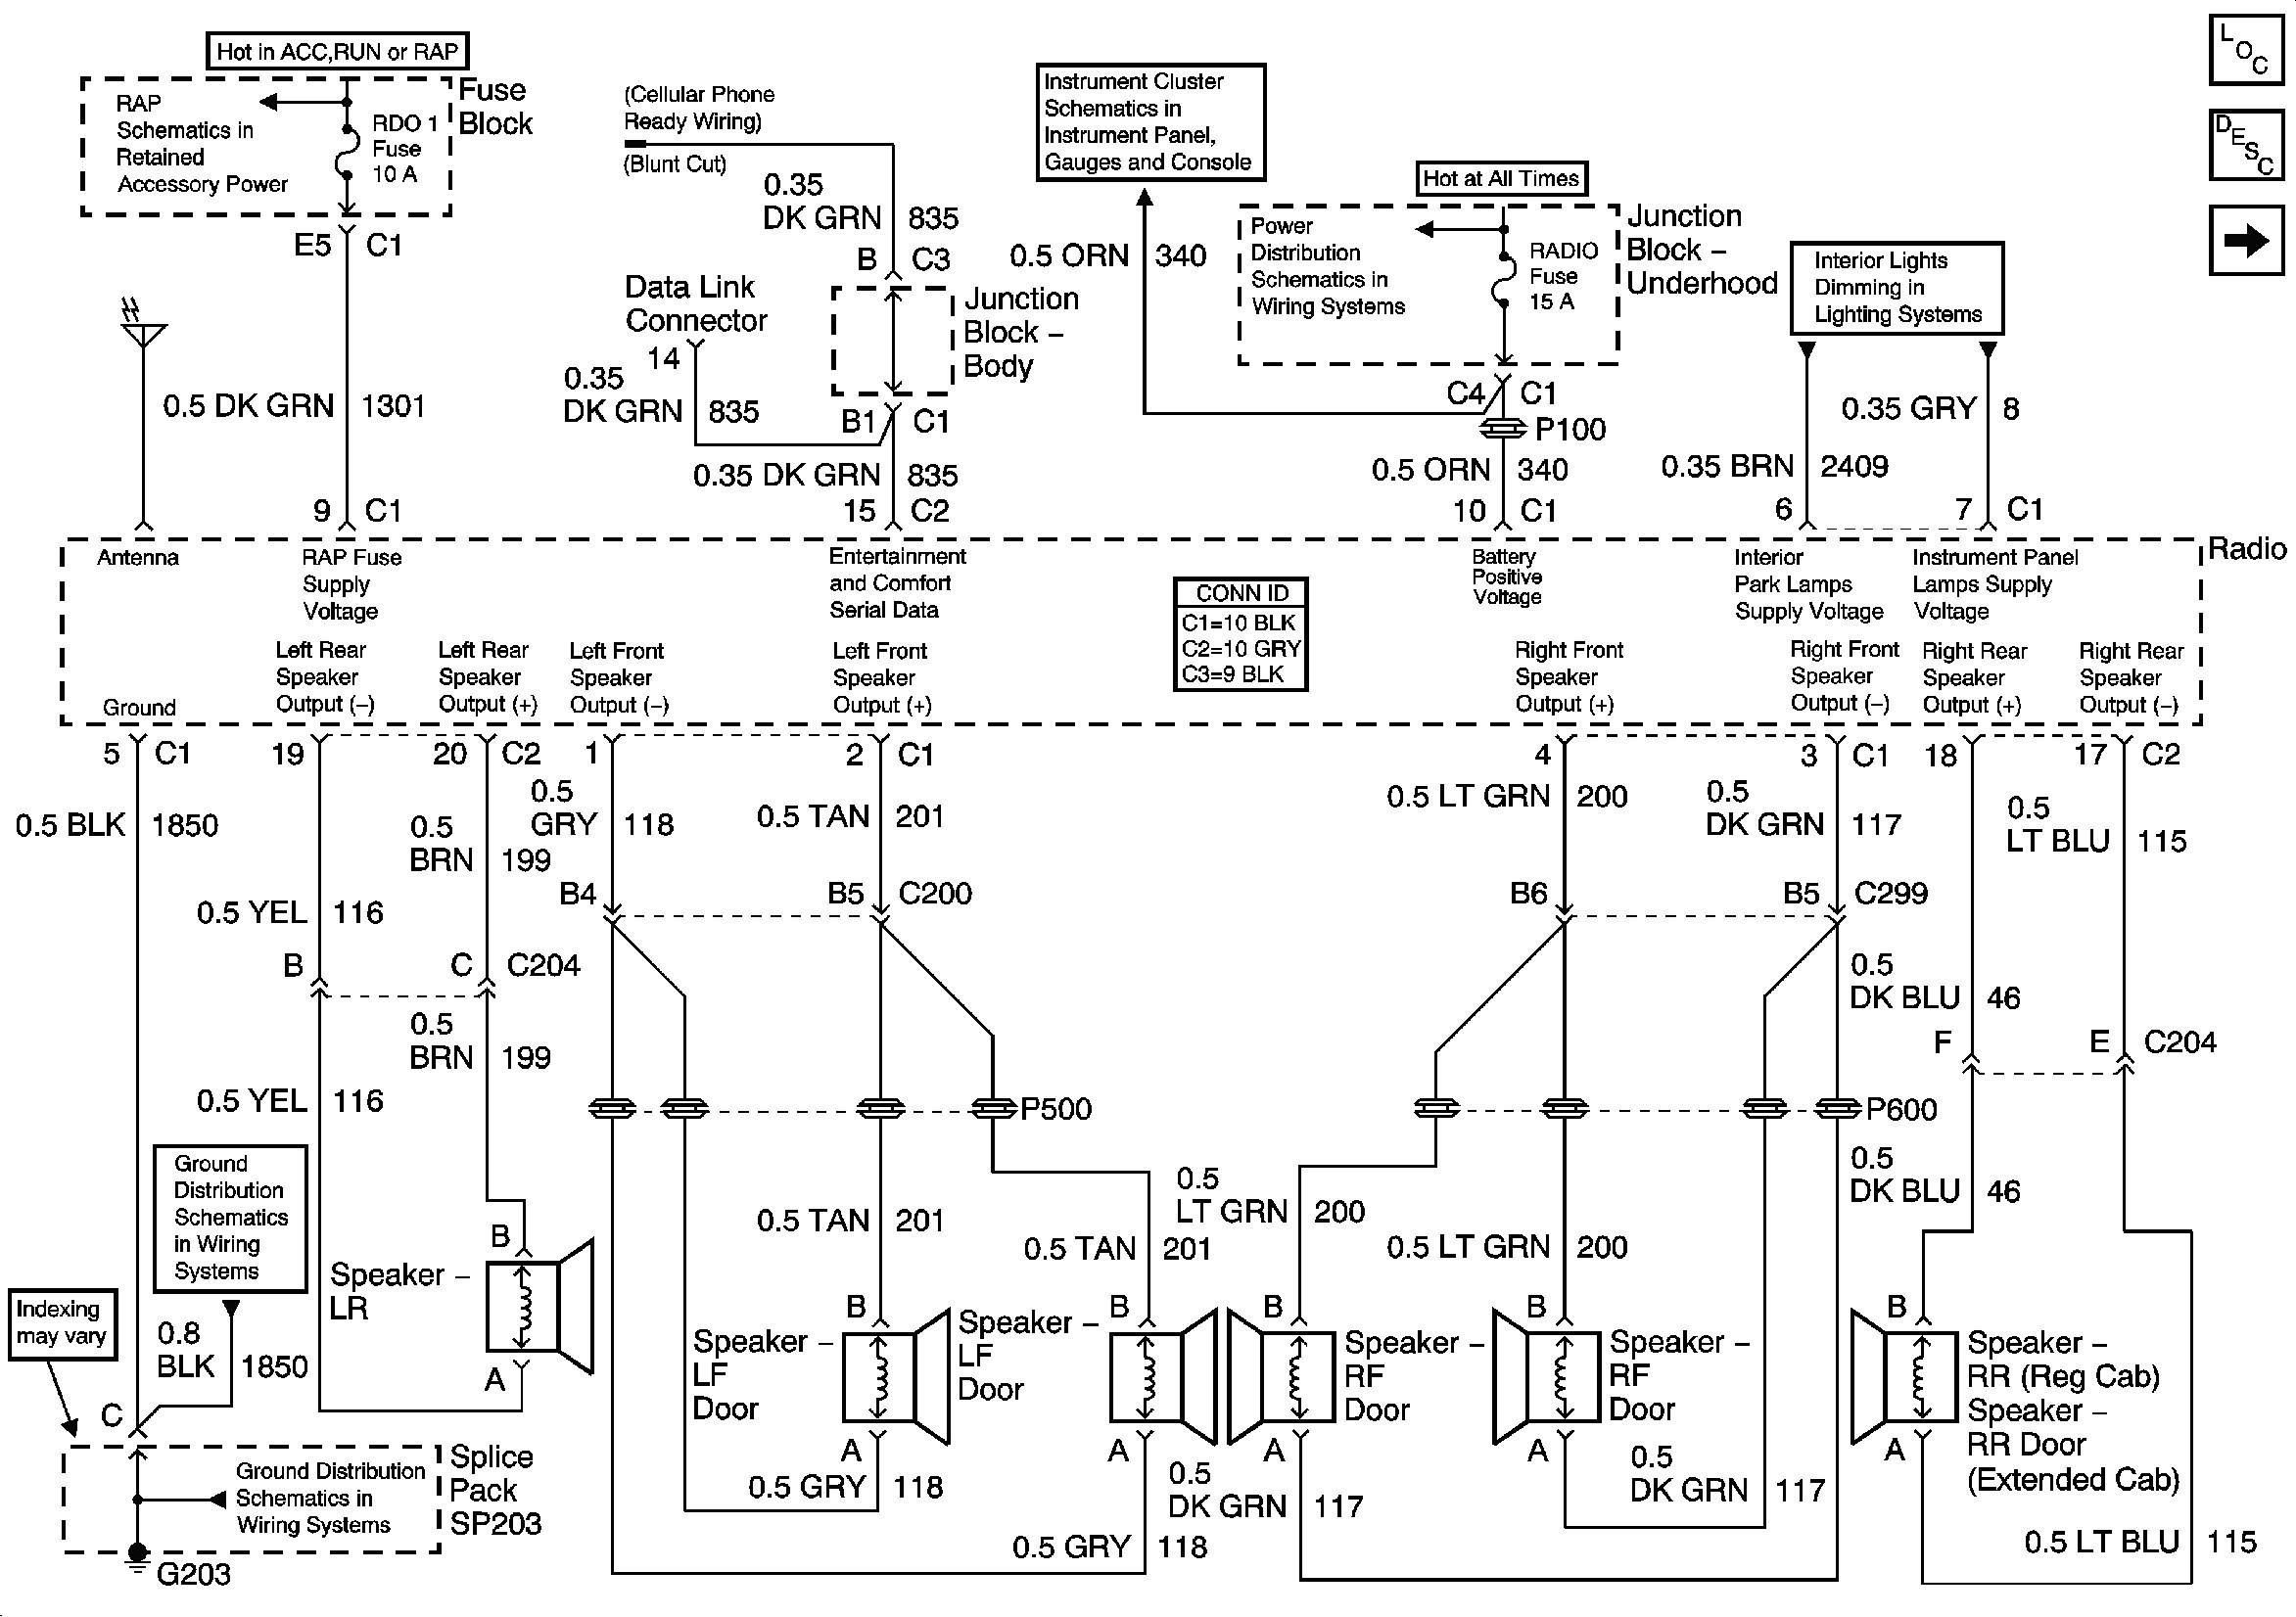 2005 tahoe wiring diagram pdf enthusiast wiring diagrams u2022 rh bwpartnersautos com 2005 tahoe radio wiring diagram 2005 tahoe rear wiper wiring diagram